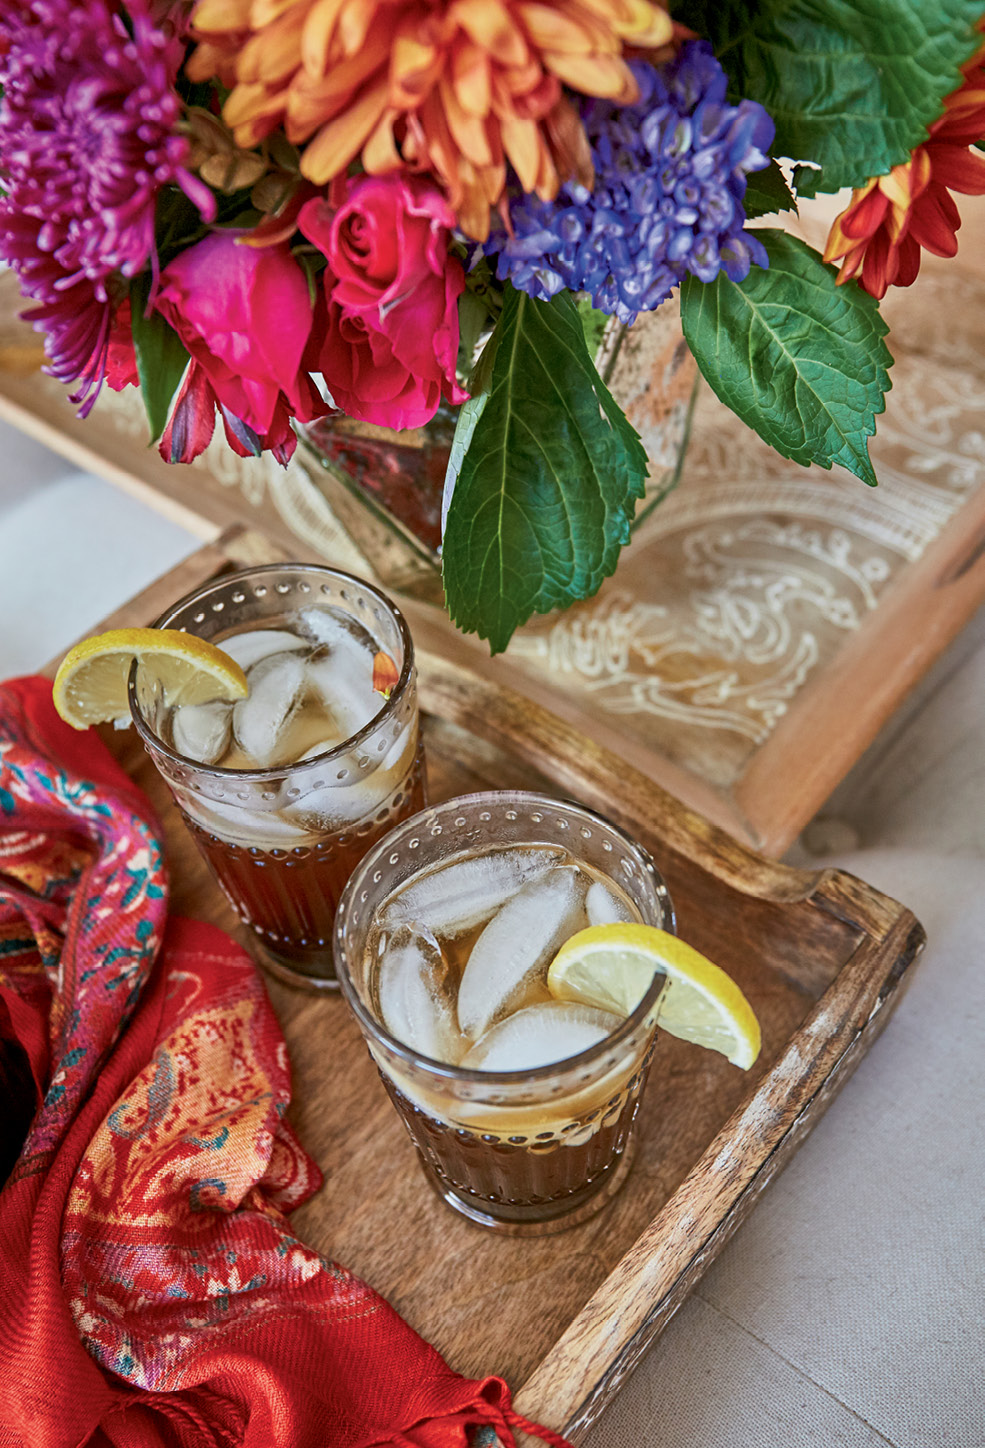 Make tamarind lemonade by mixing eight cups of warm water, two cups of lemon juice, two cups of sugar, and three tablespoons of tamarind concentrate. Stir until the sugar dissolves, then chill.